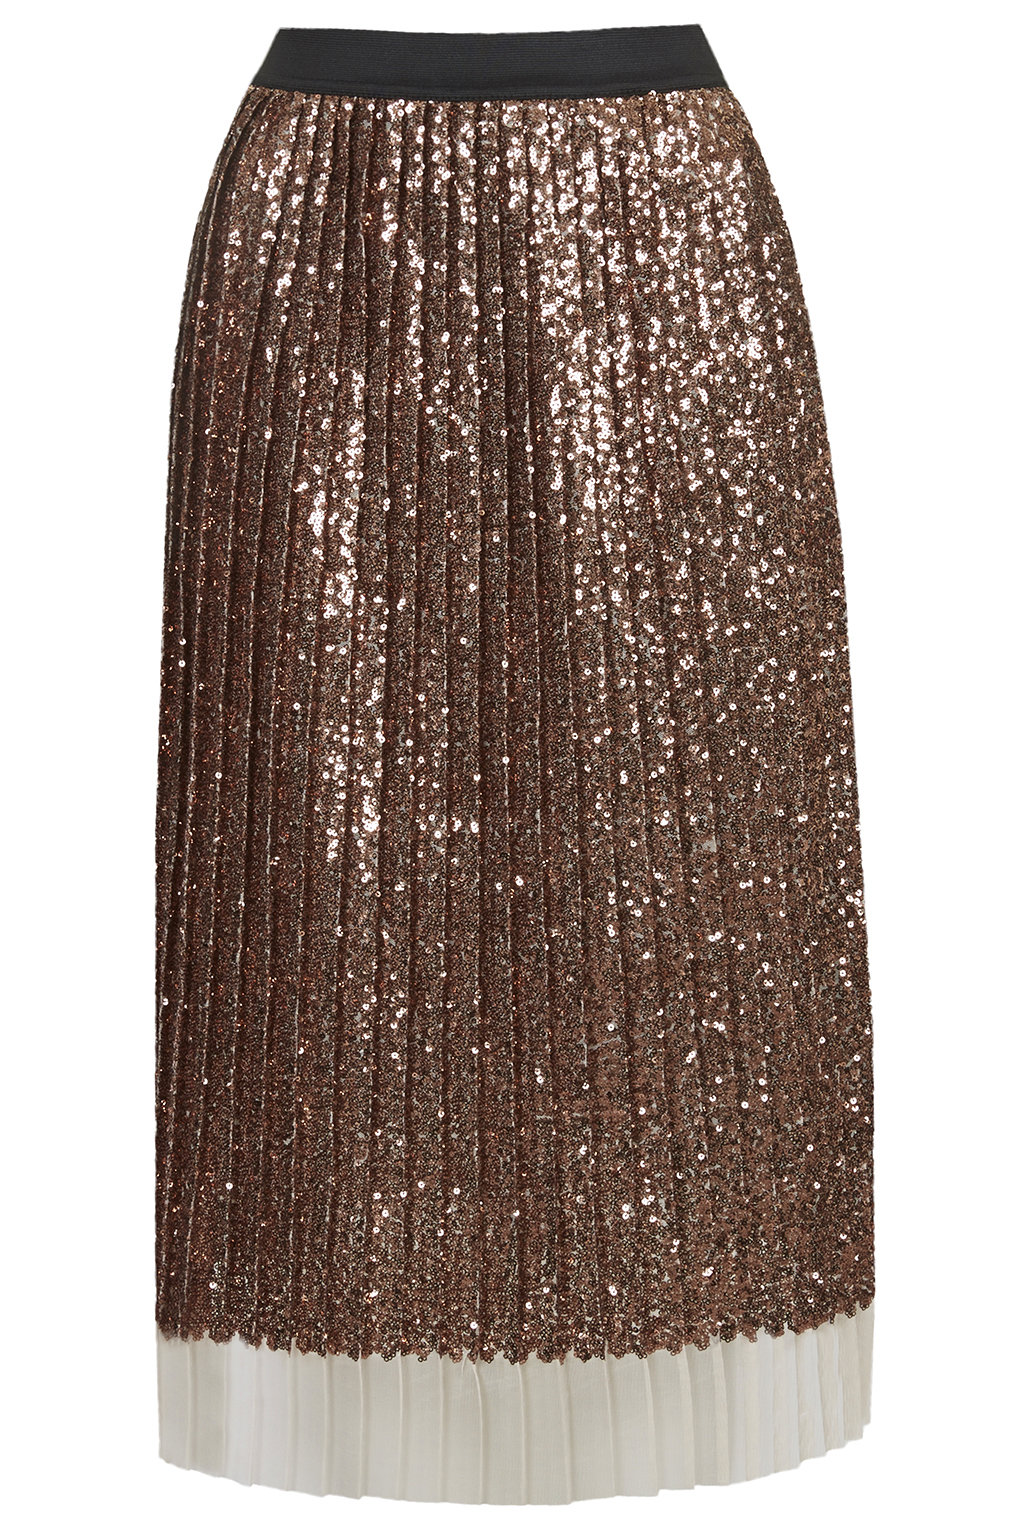 Topshop, Sequin Pleated Skirt £75